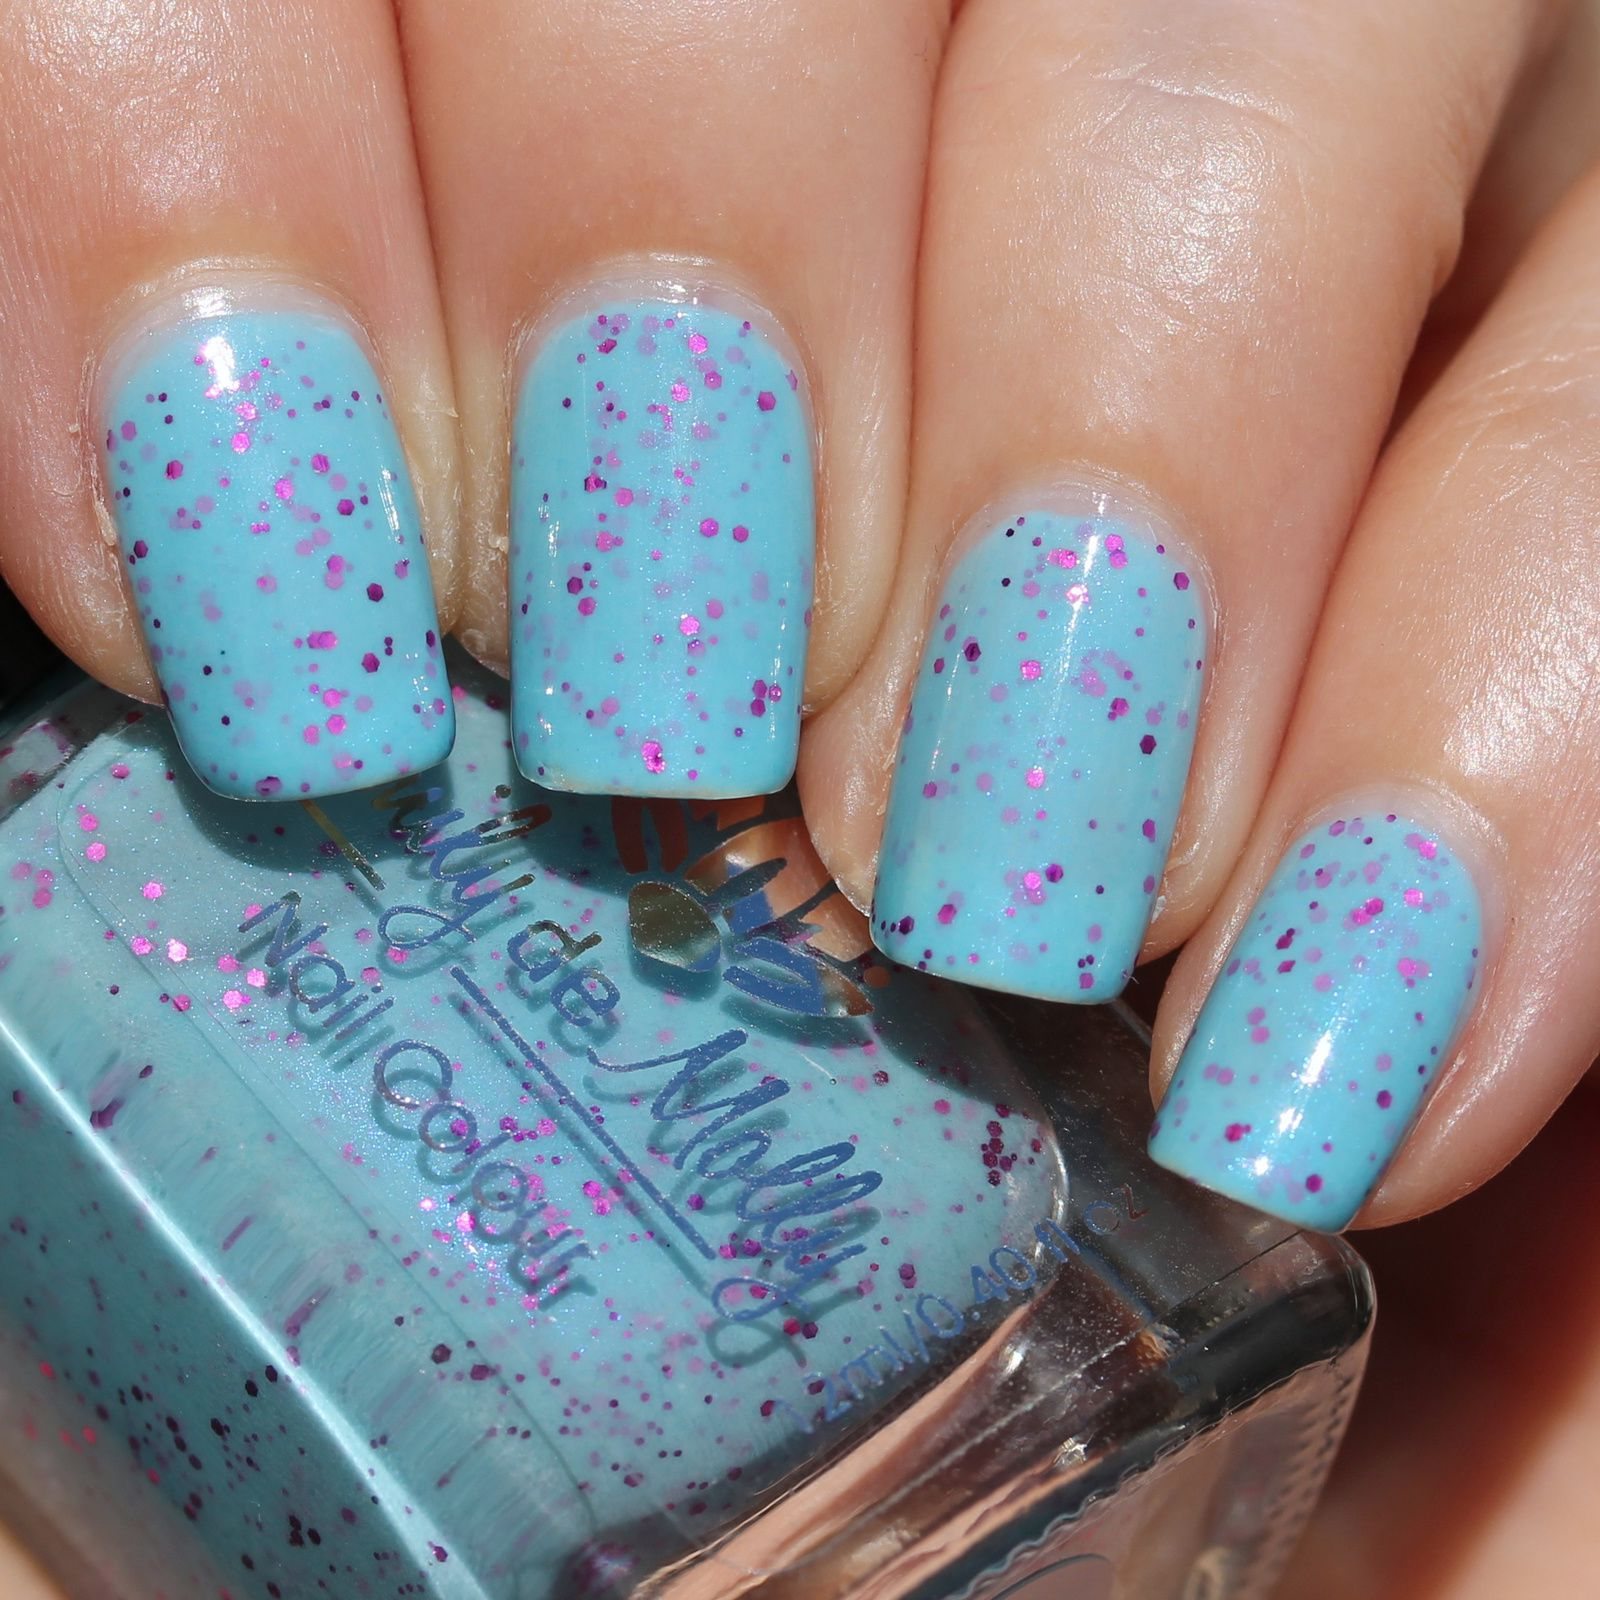 Dance Legend Peel-off Express base coat / Emily de Molly Candy Coated / Sally Hansen Miracle Gel Top Coat